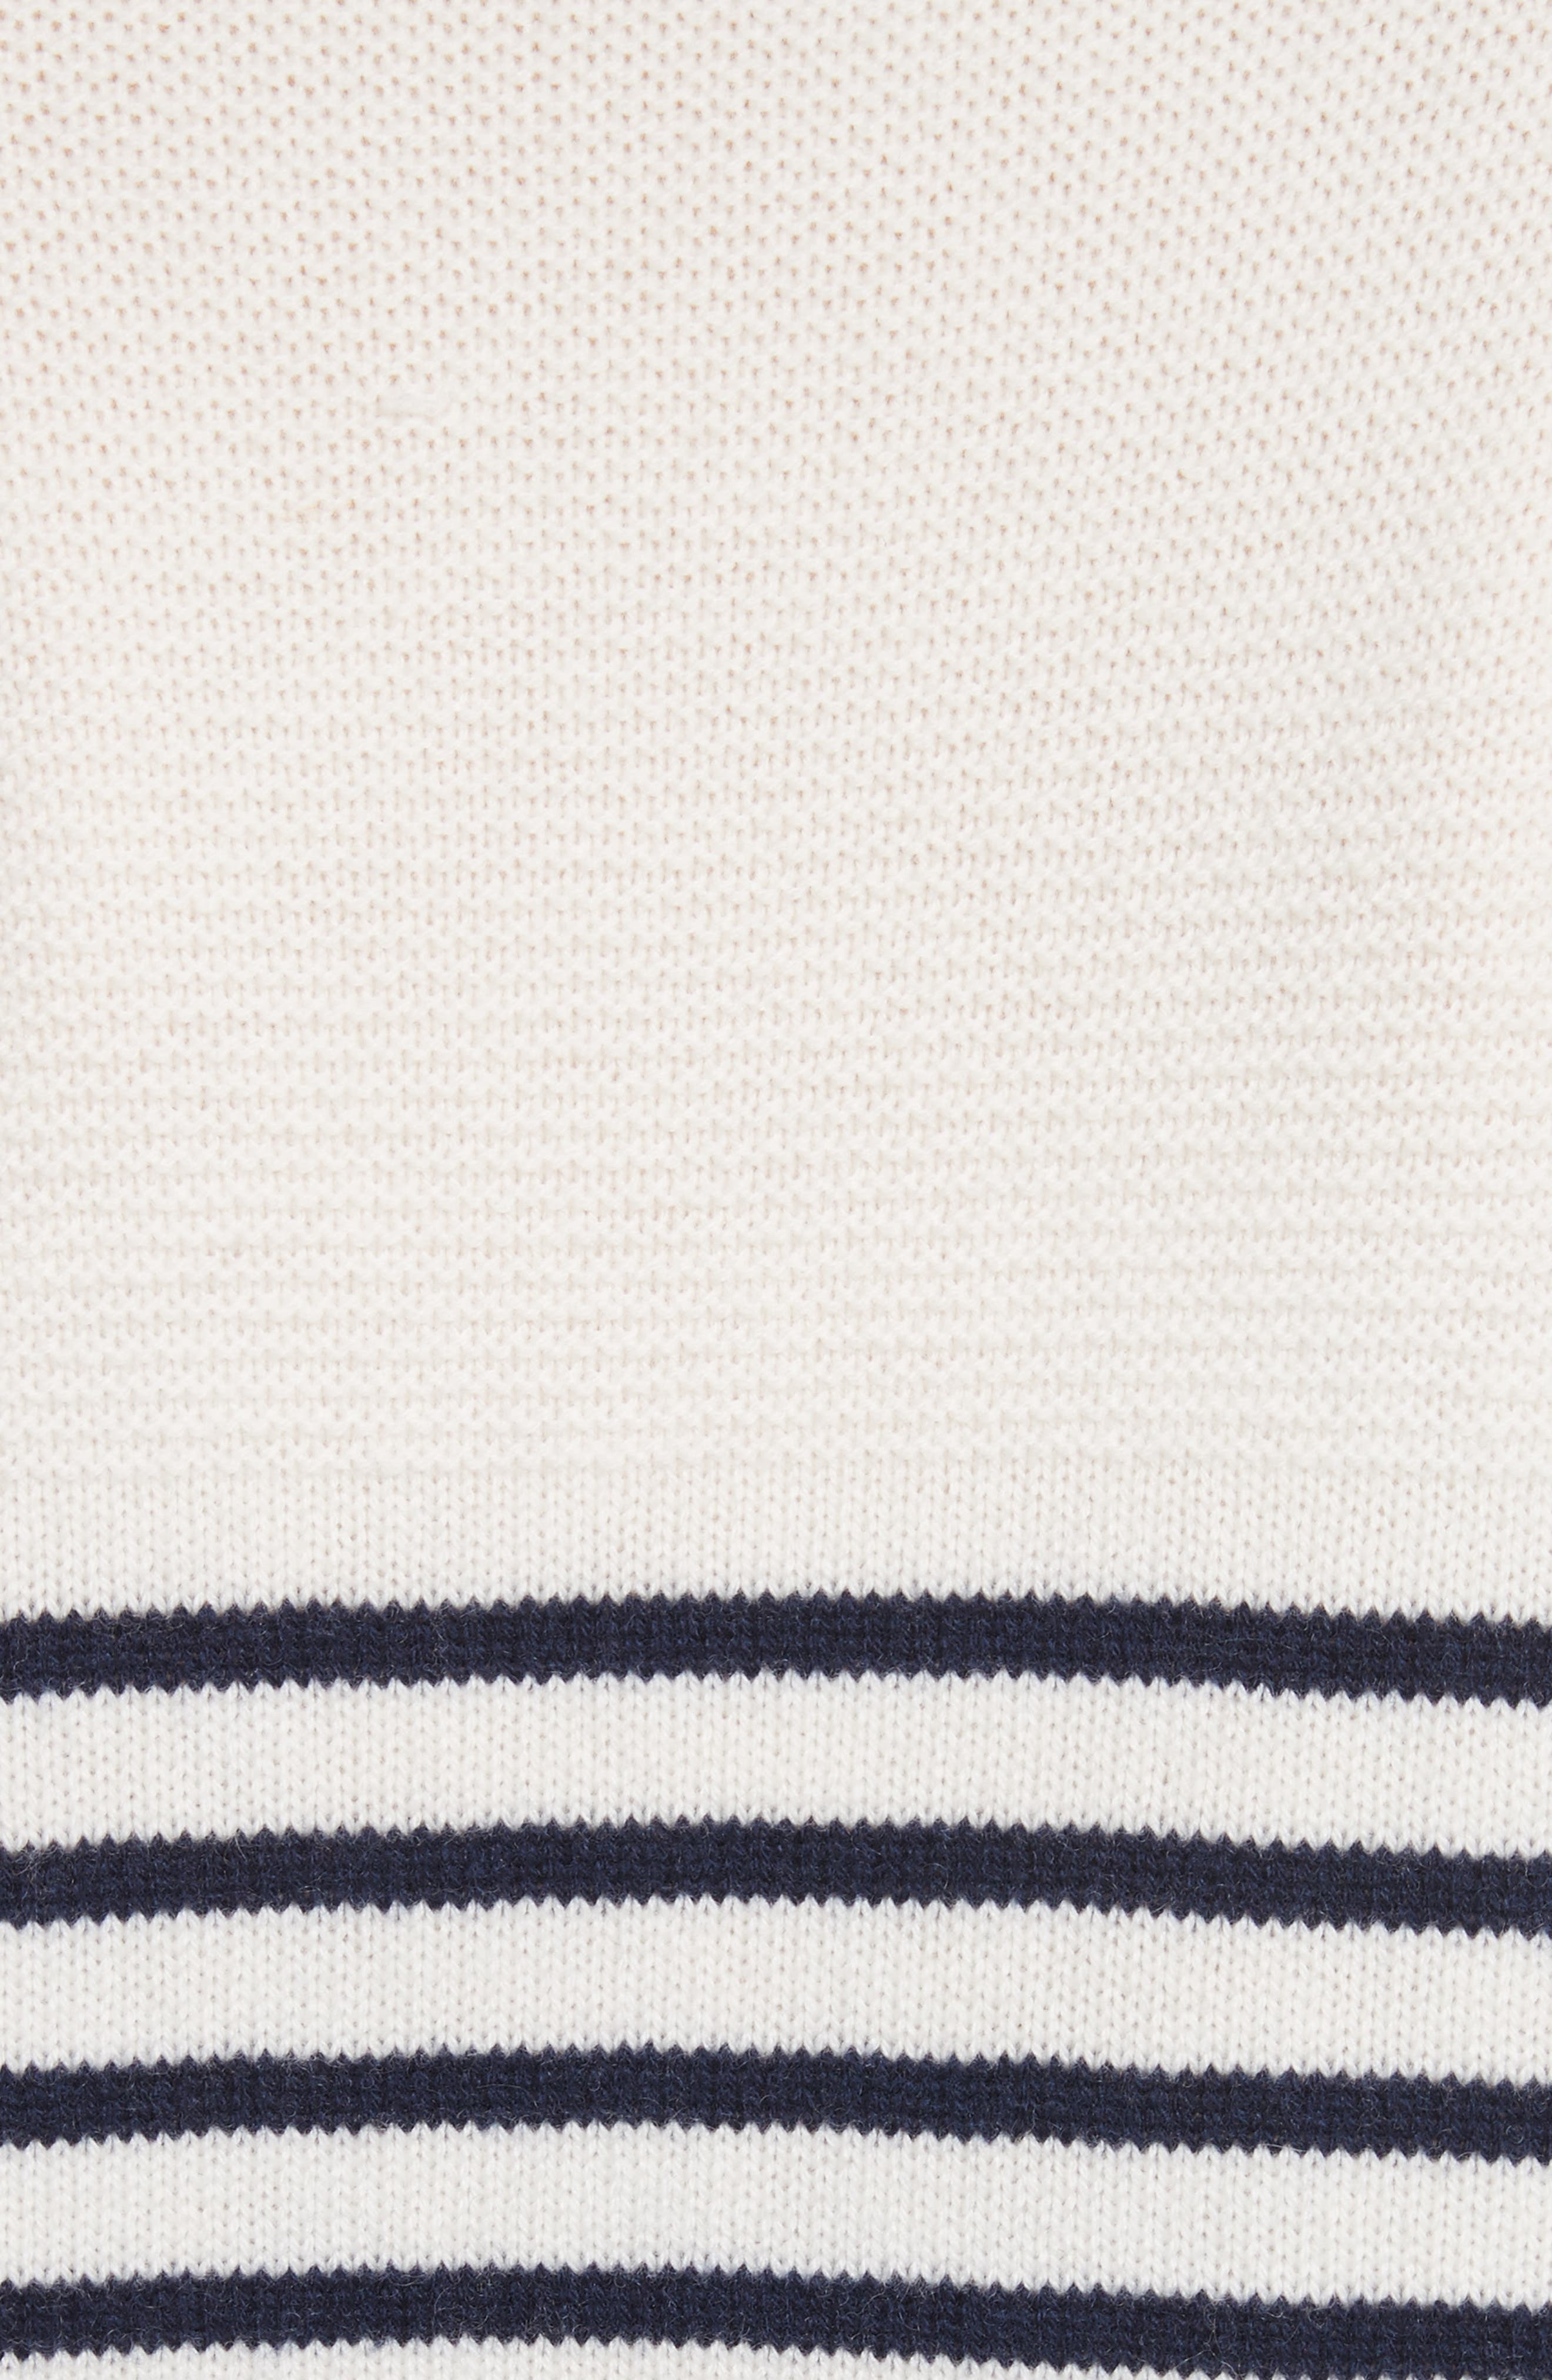 Aefre Woven Trim Wool & Cashmere Sweater,                             Alternate thumbnail 5, color,                             Porcelain/ Midnight